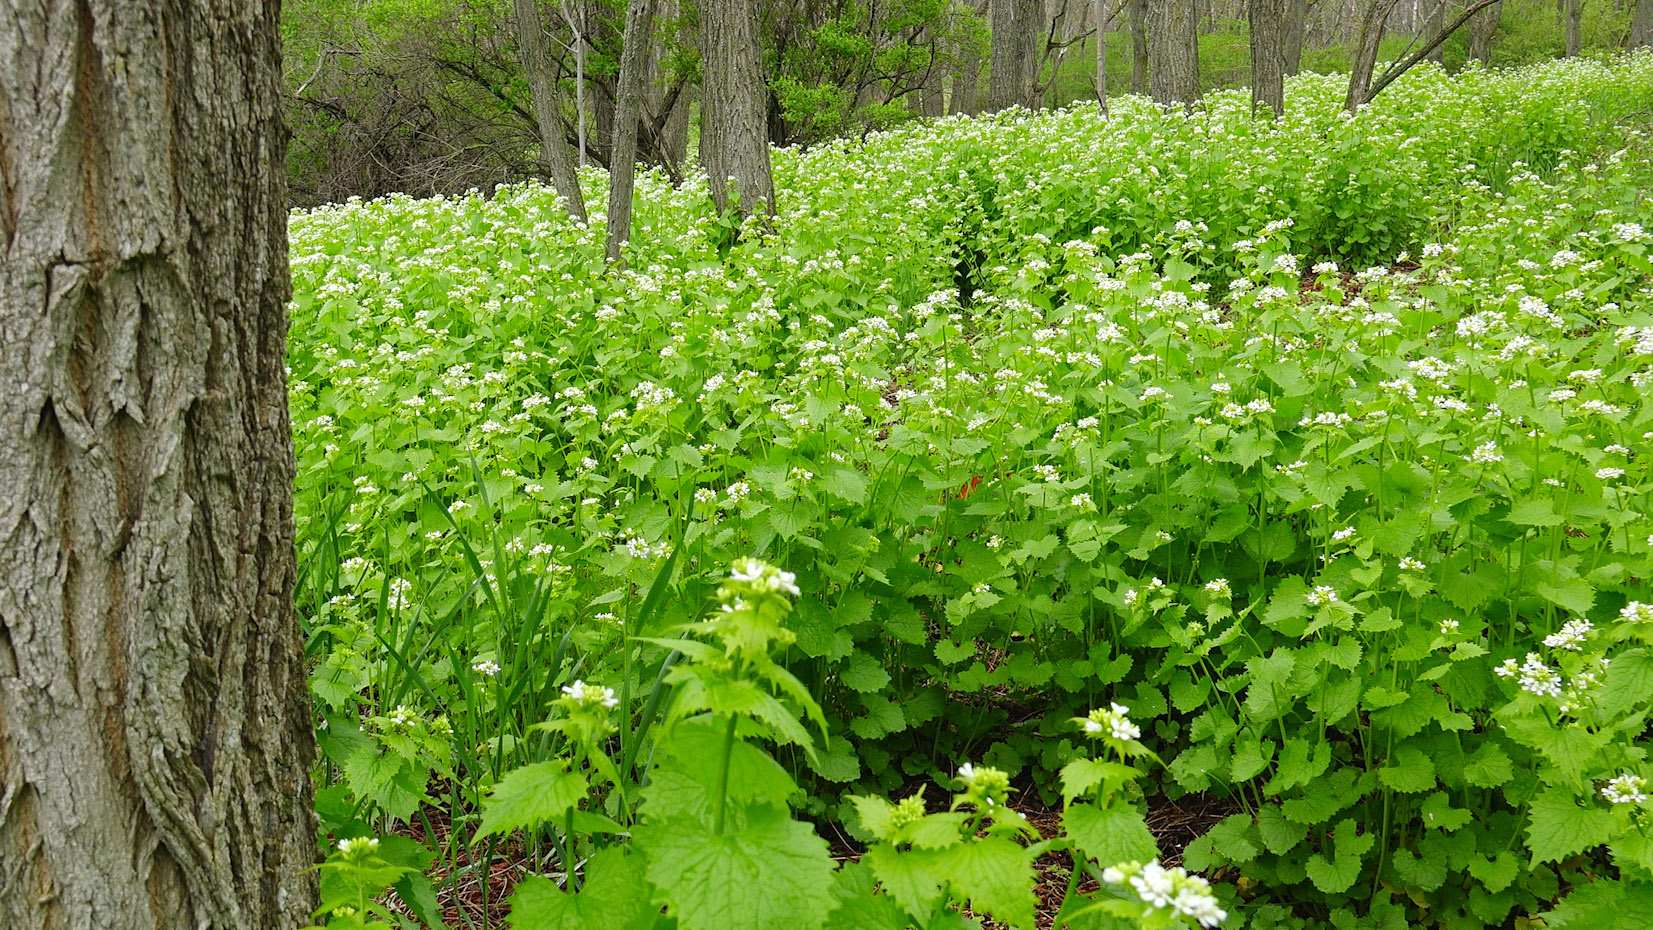 Garlic mustard in woodland - leelanauconservancy